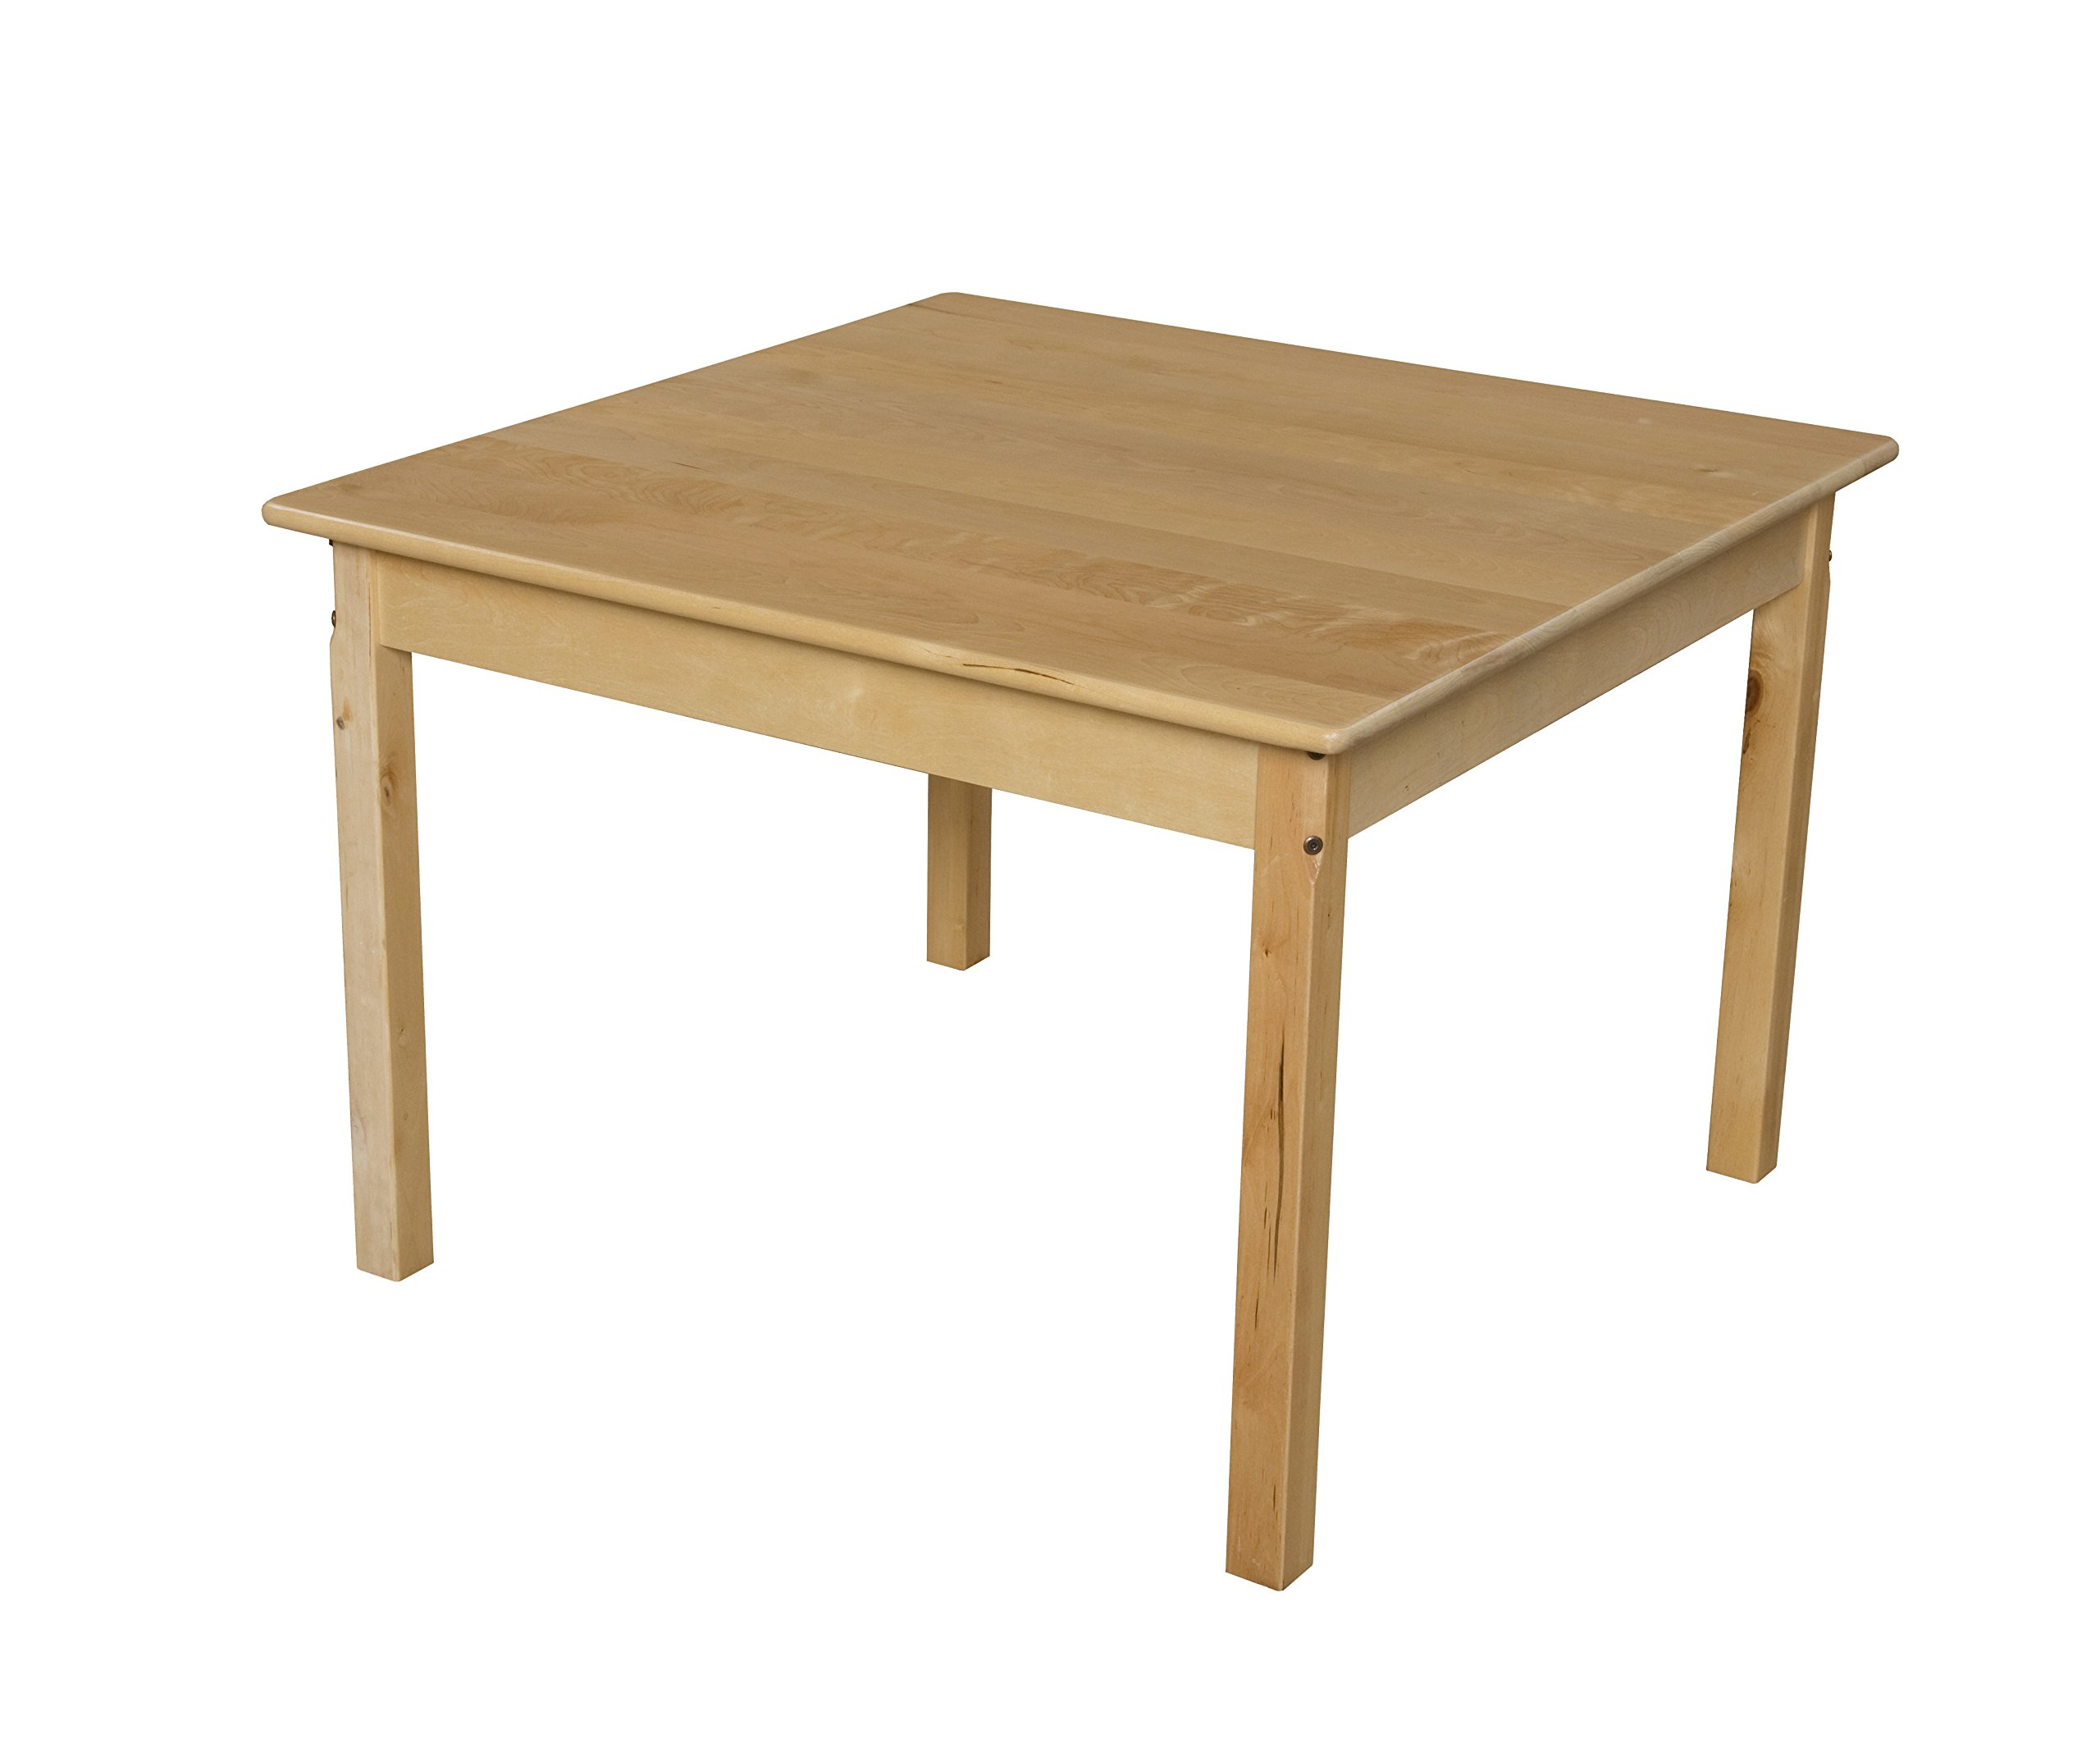 Wood Designs WD83724 Child's Table, 36'' Square with 24'' Legs